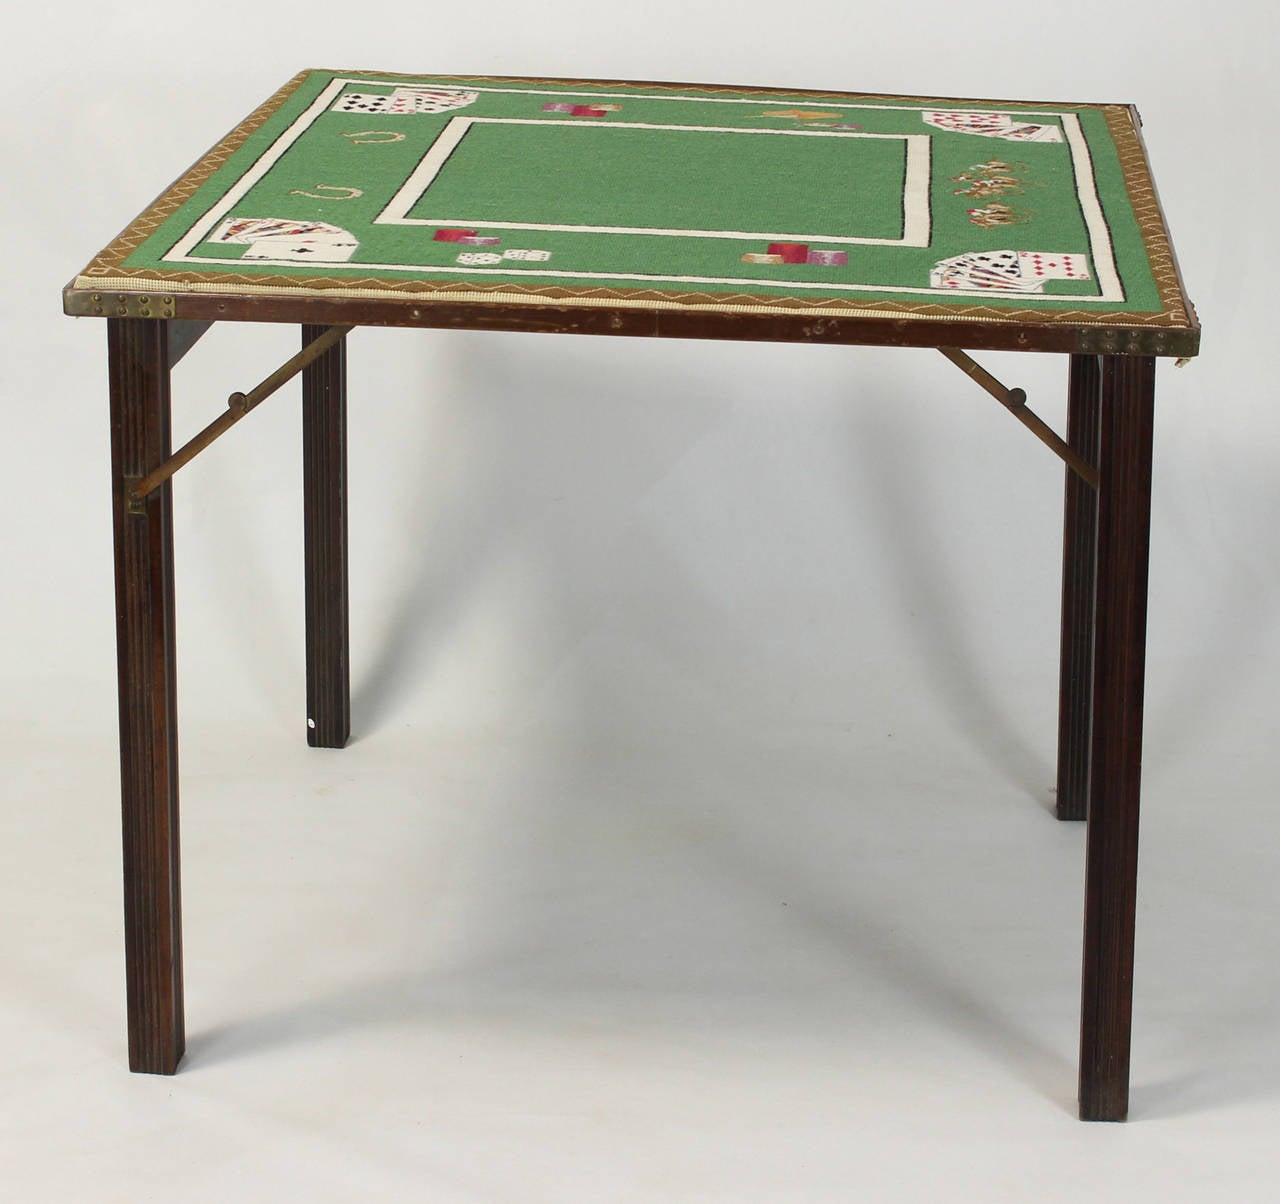 A Fantastic Handmade Wool Needlepoint Card Table Dating From The 1940u0027s  Depicting Playing Cards, Racehorses